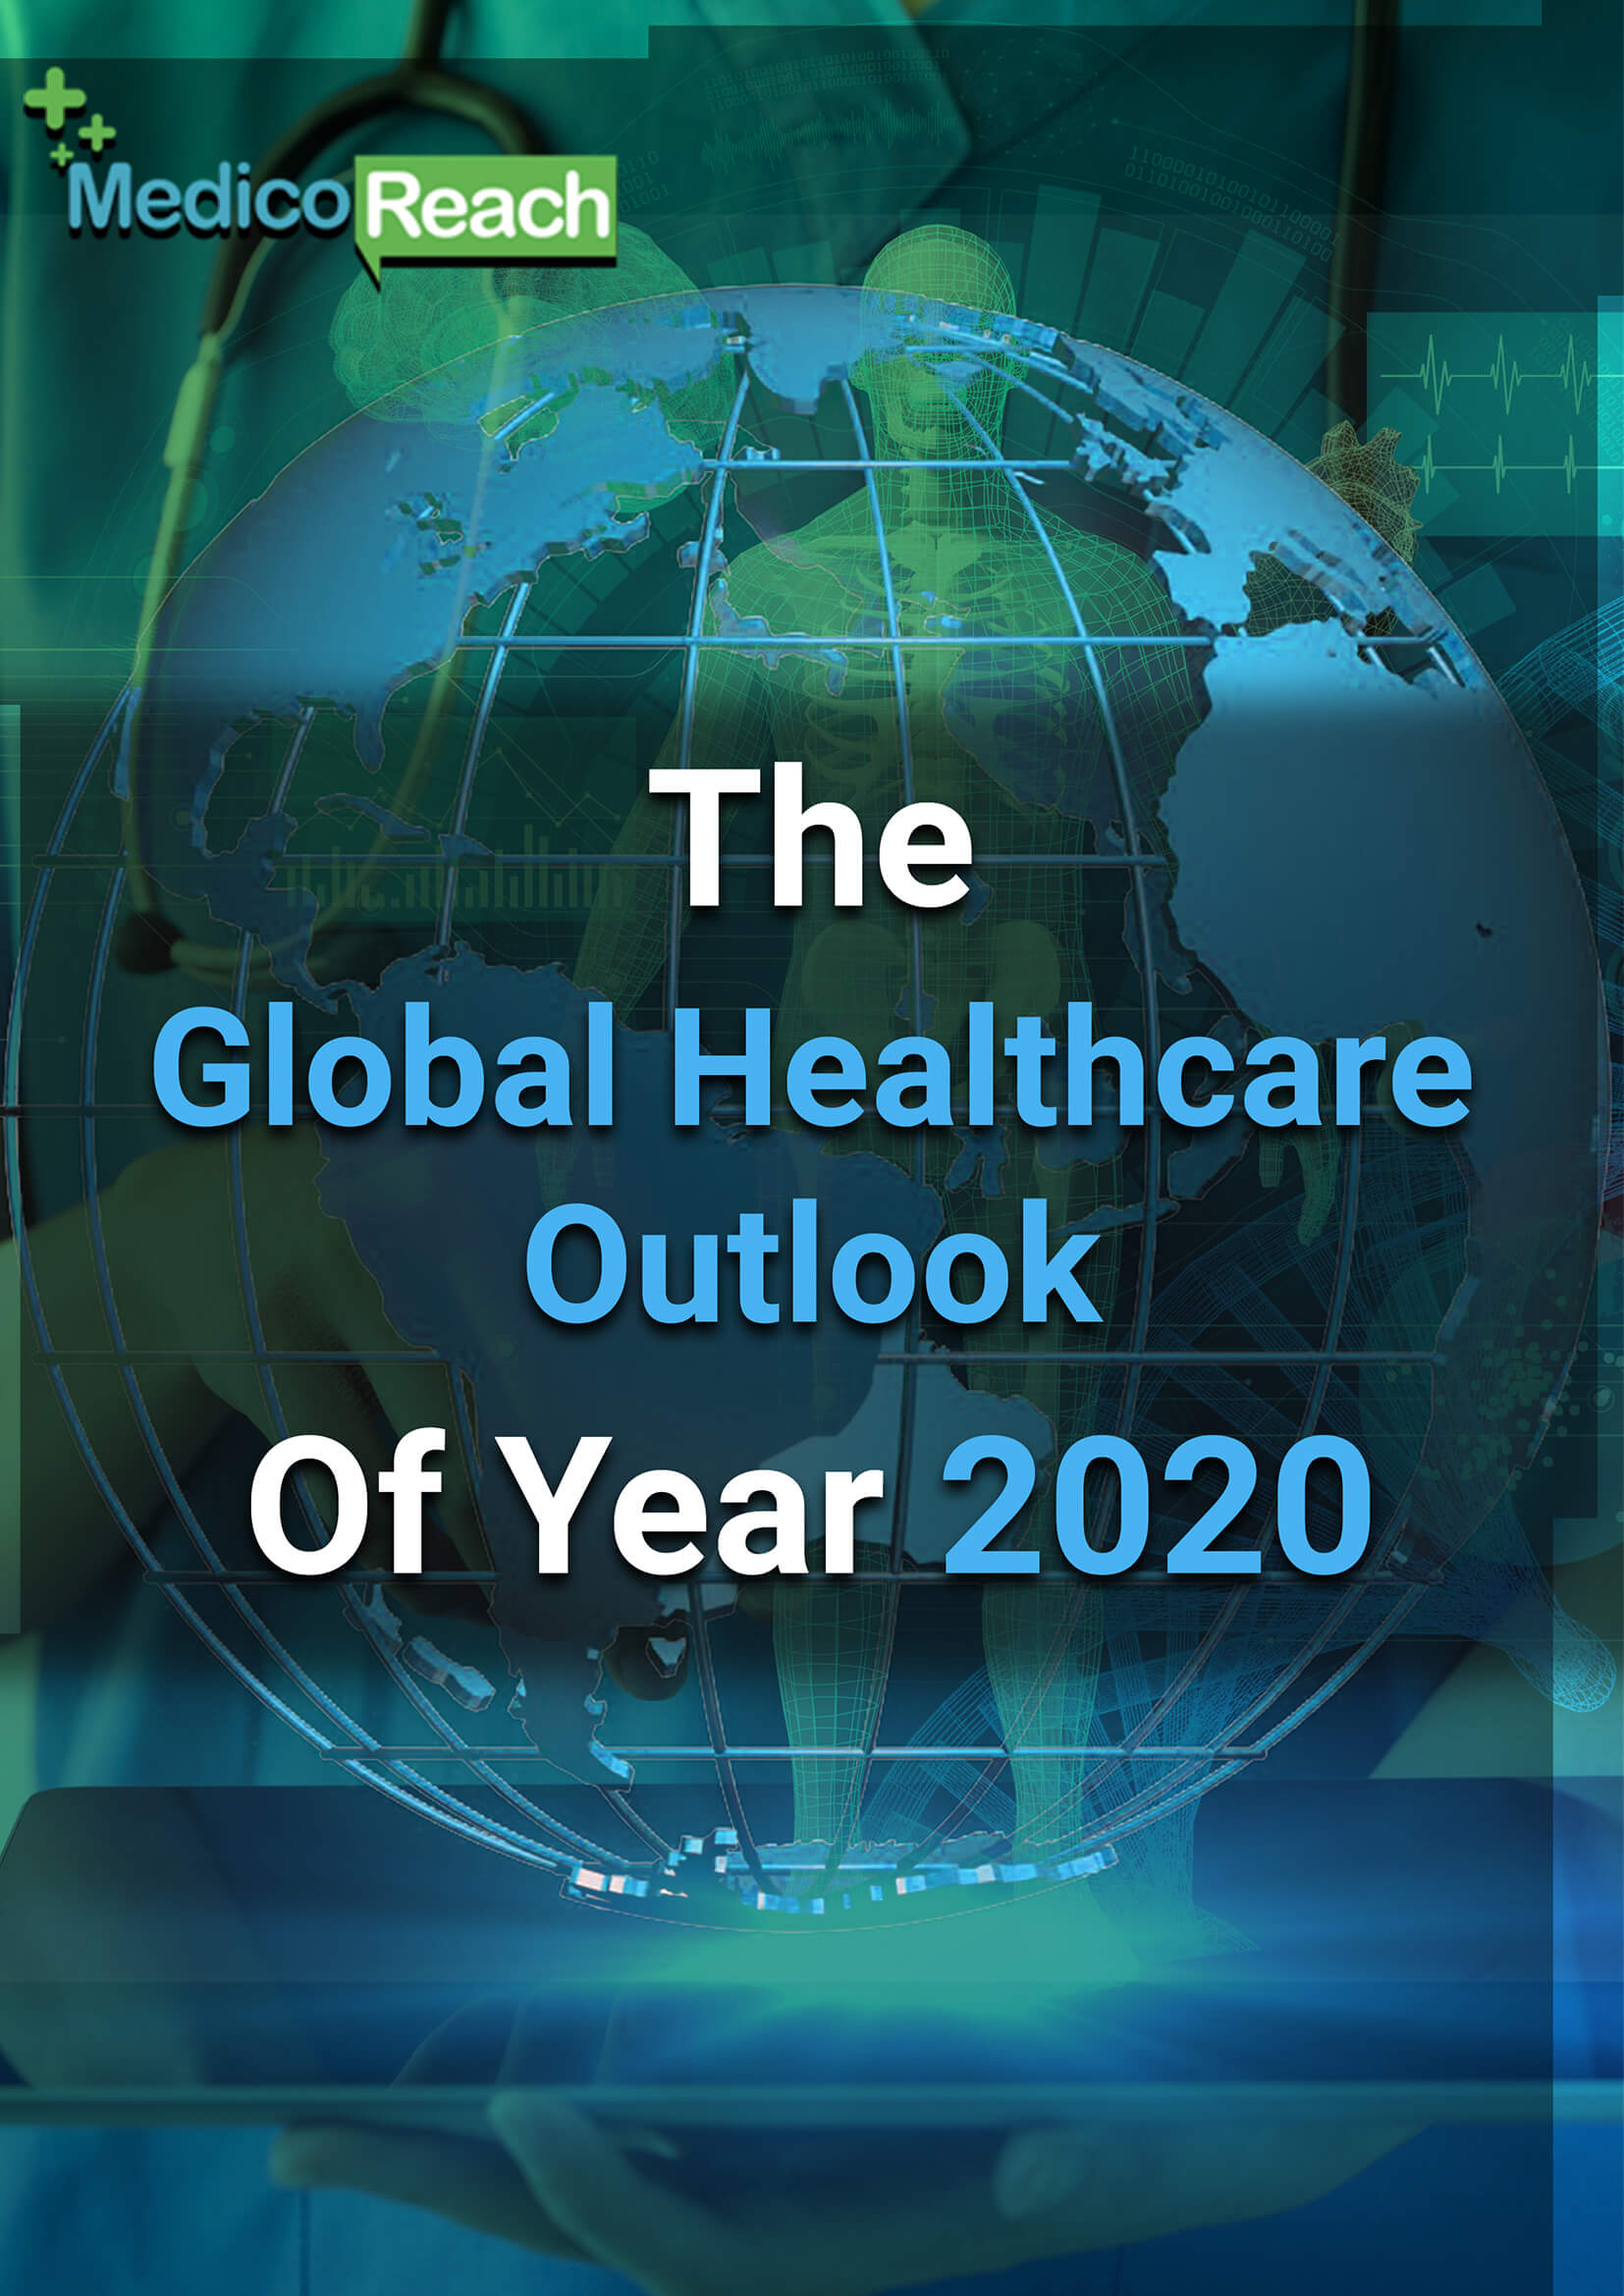 Global Healthcare Featured Image